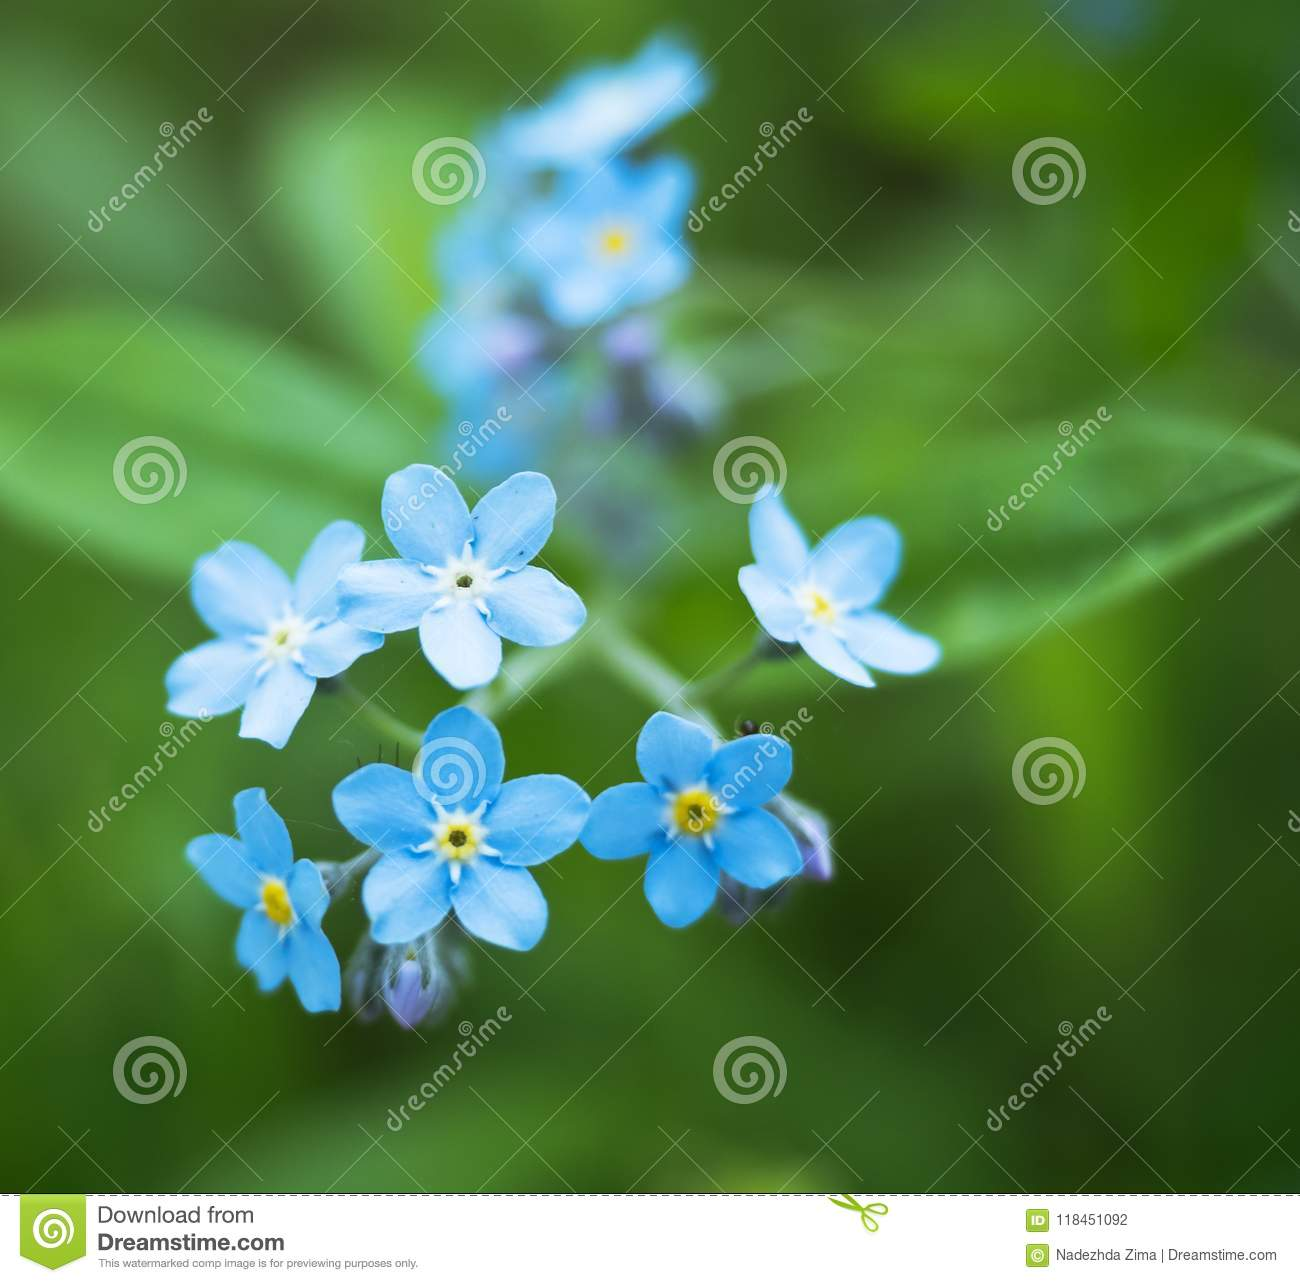 Small blue flowers large blue petals on a green background forget small blue flowers large blue petals on a green background forget me izmirmasajfo